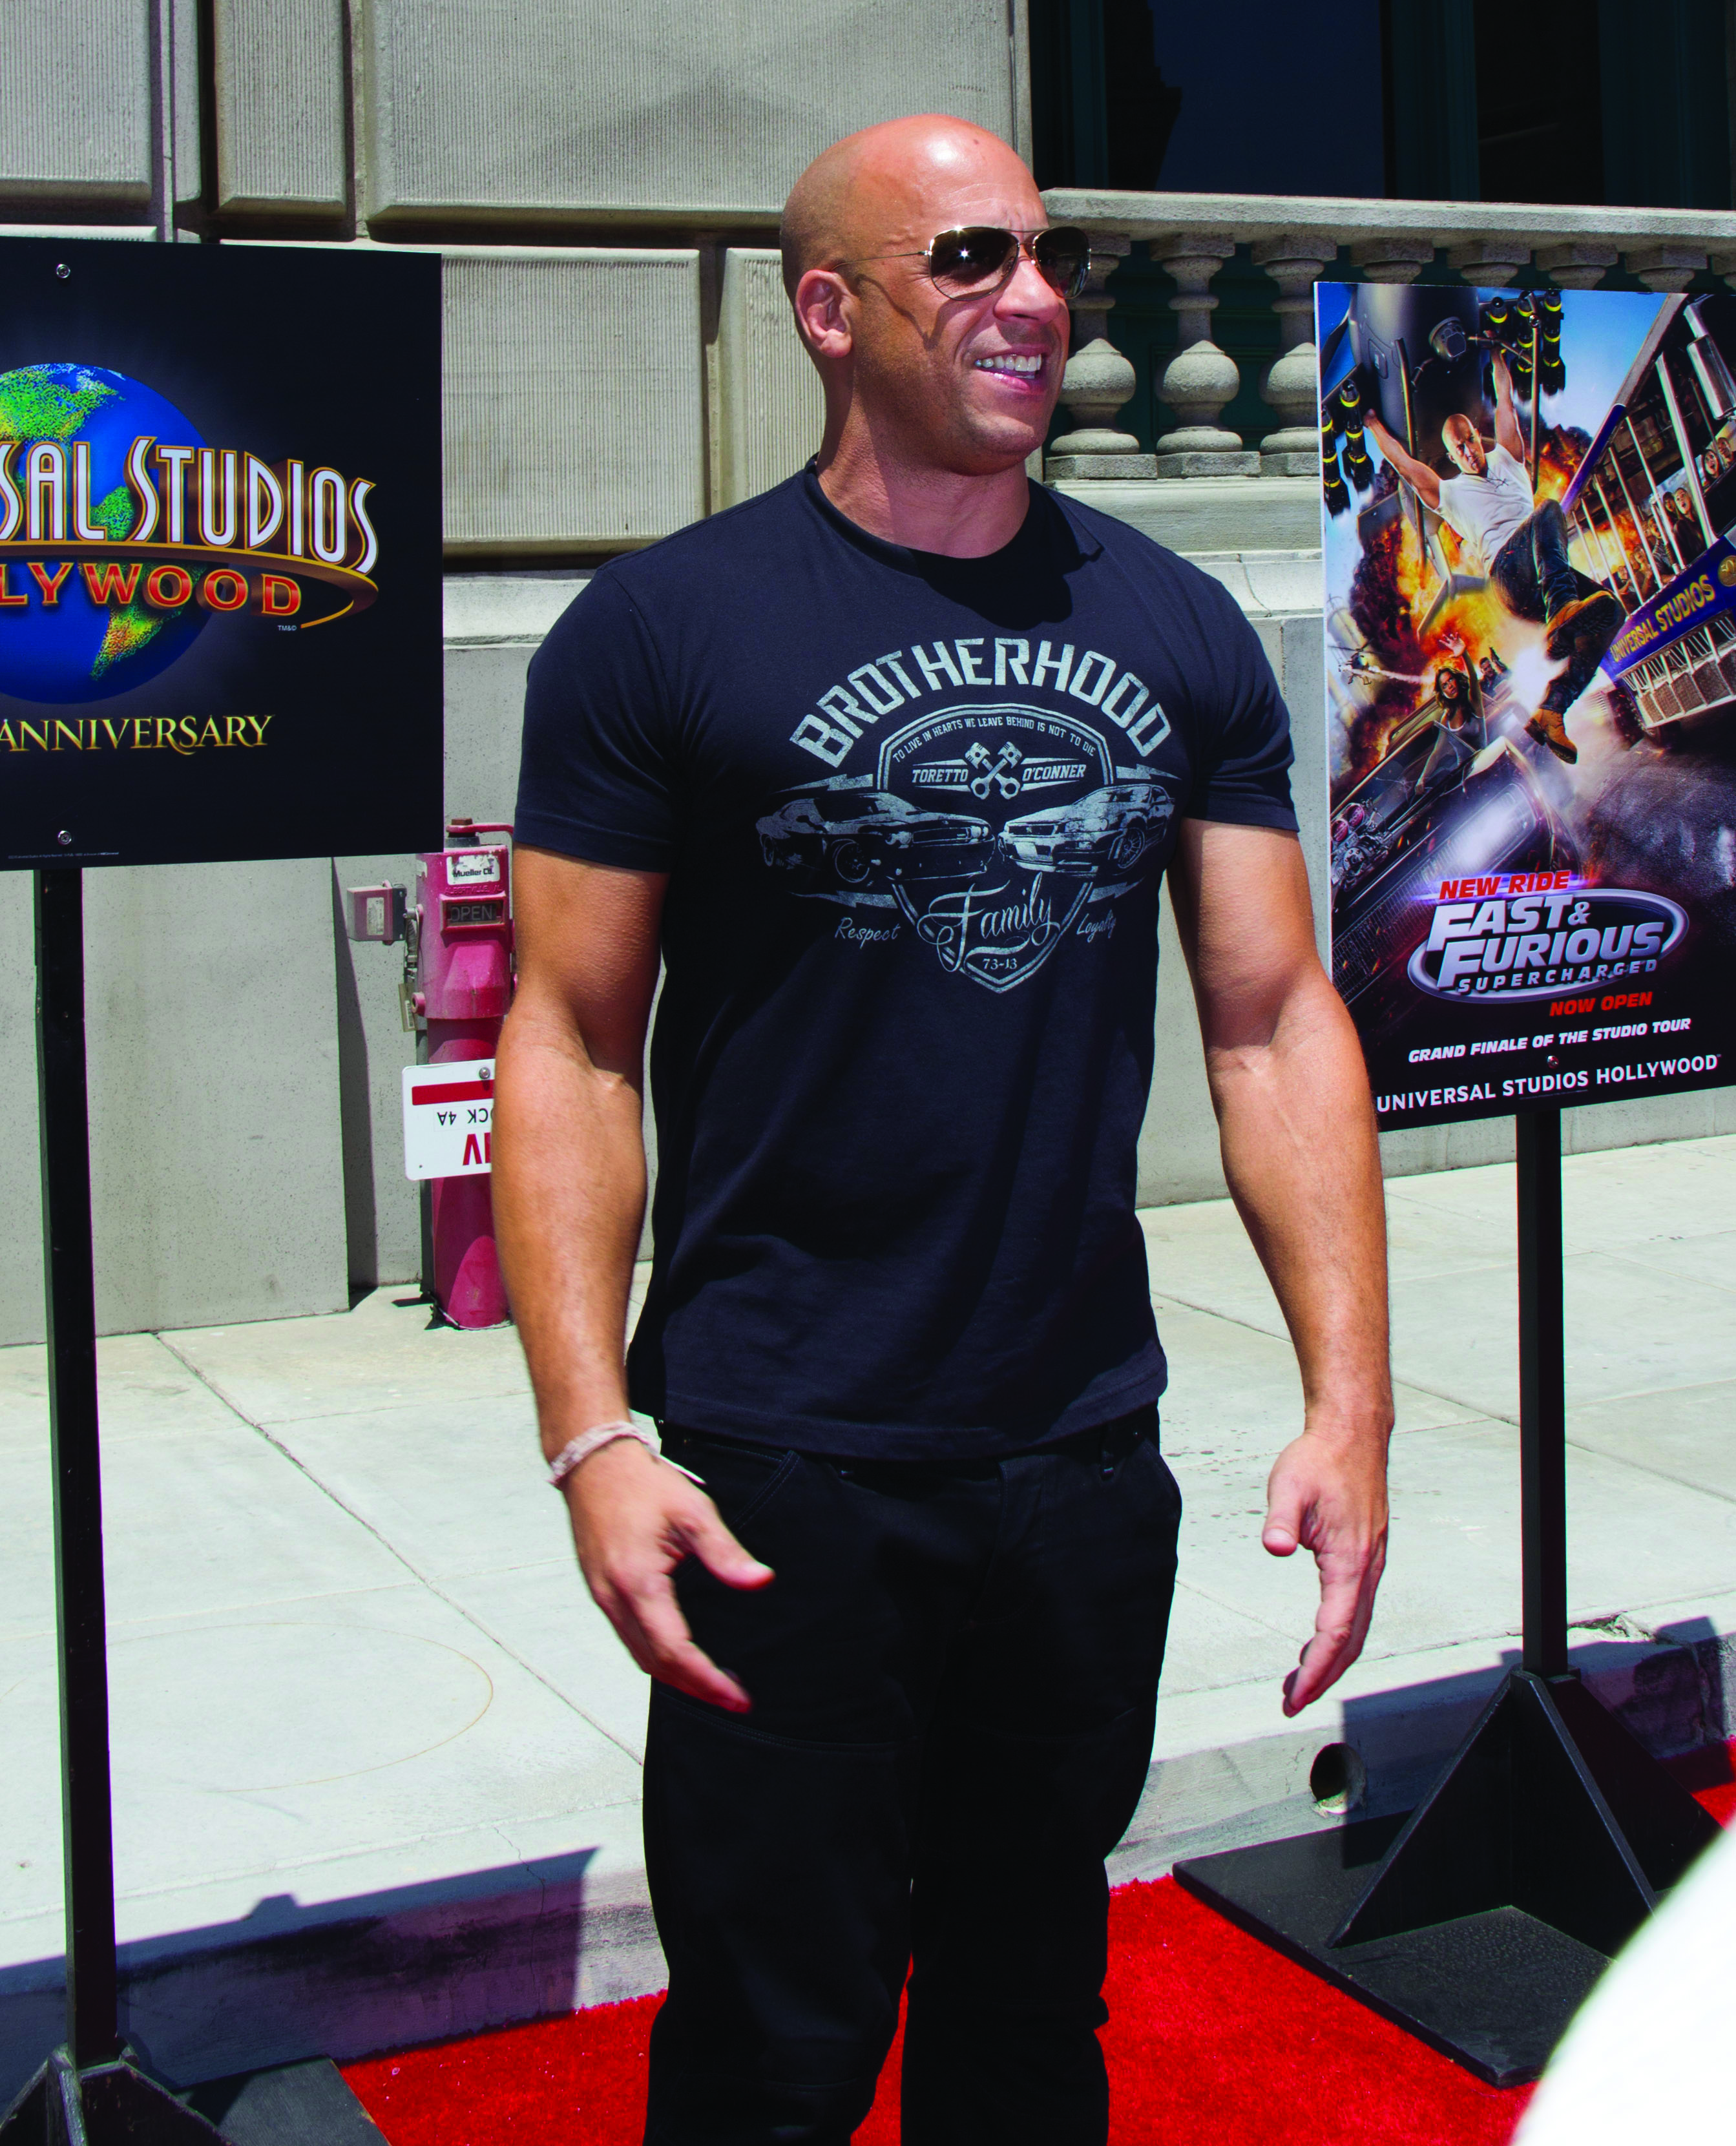 "(150624) -- LOS ANGELES, June 24, 2015 (Xinhua) -- Actor Vin Diesel attends the premiere of Universal Studios Hollywood's thrill ride,""fast & Furious -- Supercharged"", in Universal City of California, the United States, on June 23, 2015. (Xinhua/Yang Lei) (nxl)"